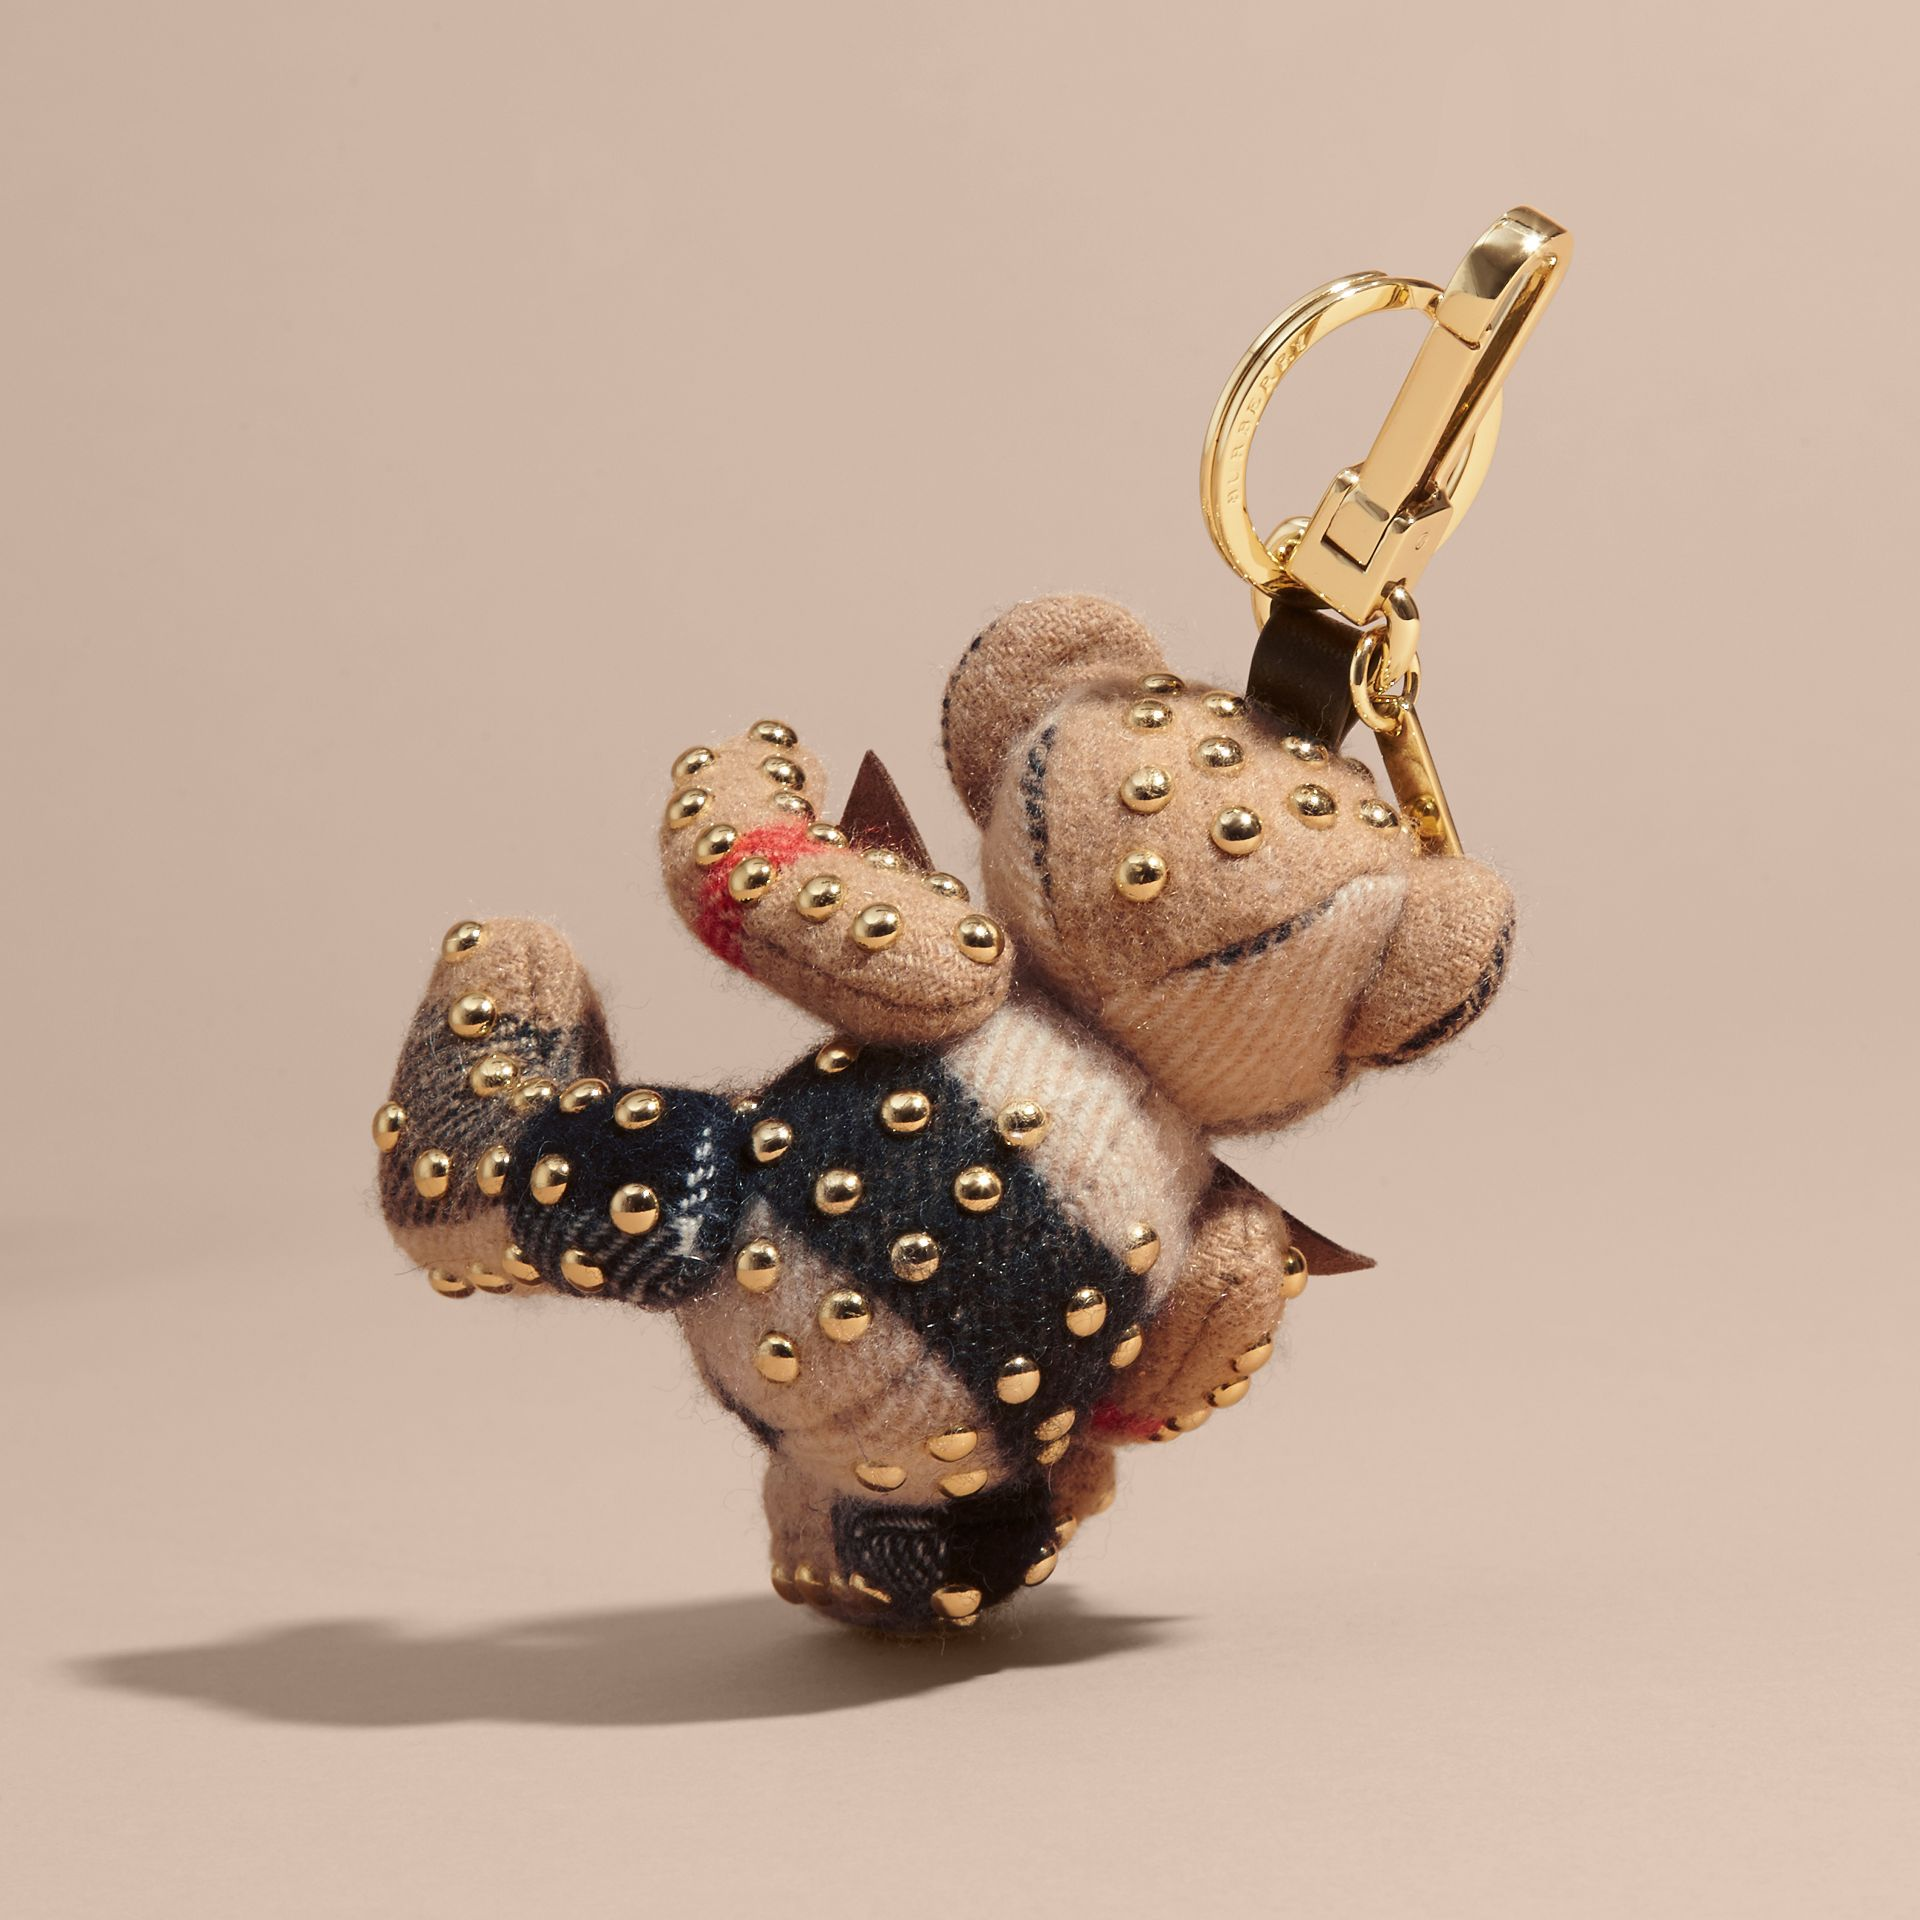 Thomas Bear Charm in Riveted Check Cashmere in Camel - Women | Burberry United States - gallery image 3